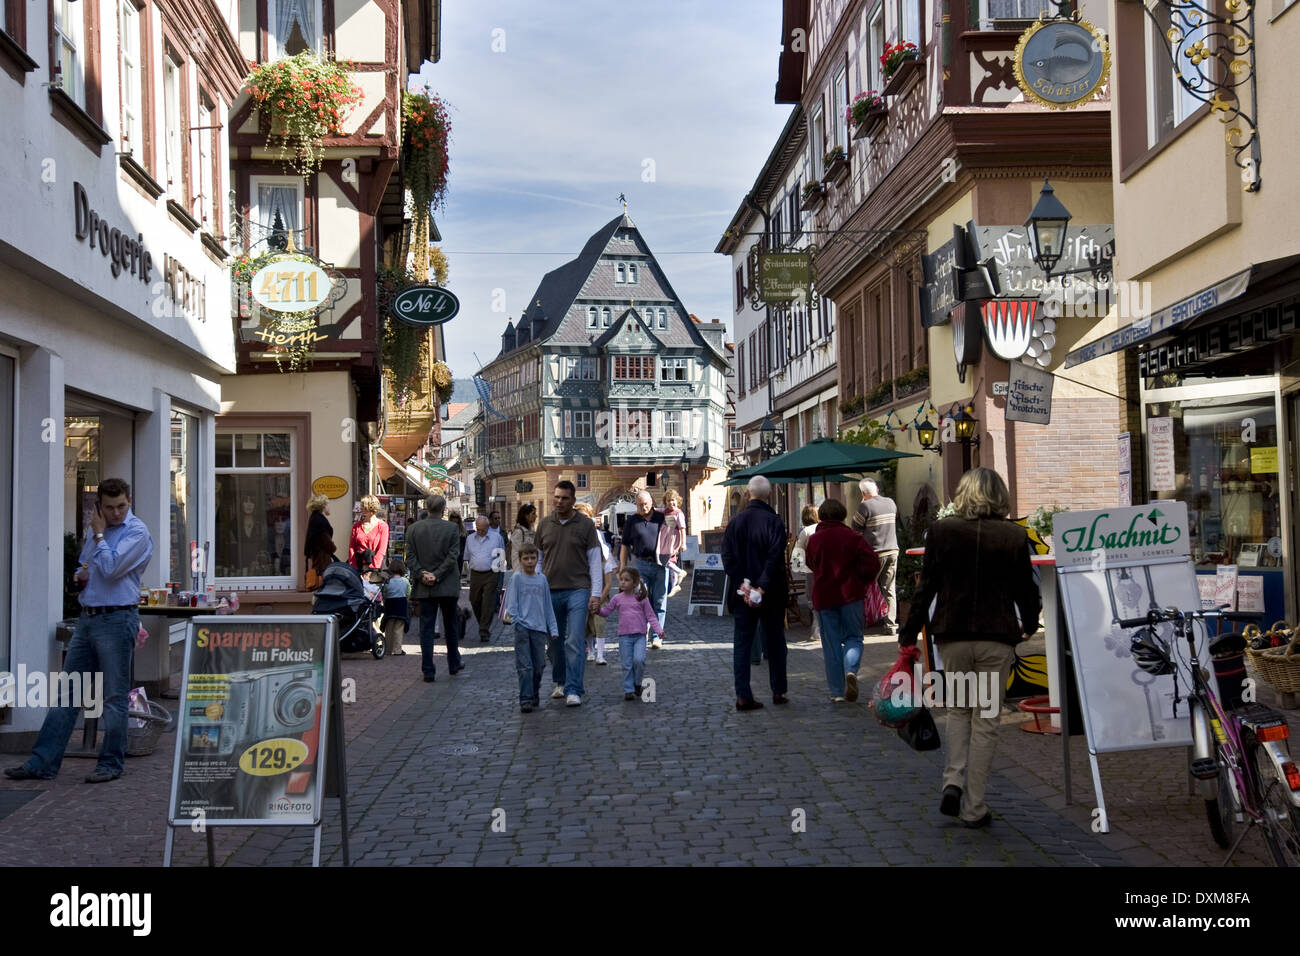 Germany, Bavaria, Townscape of Miltenberg - Stock Image